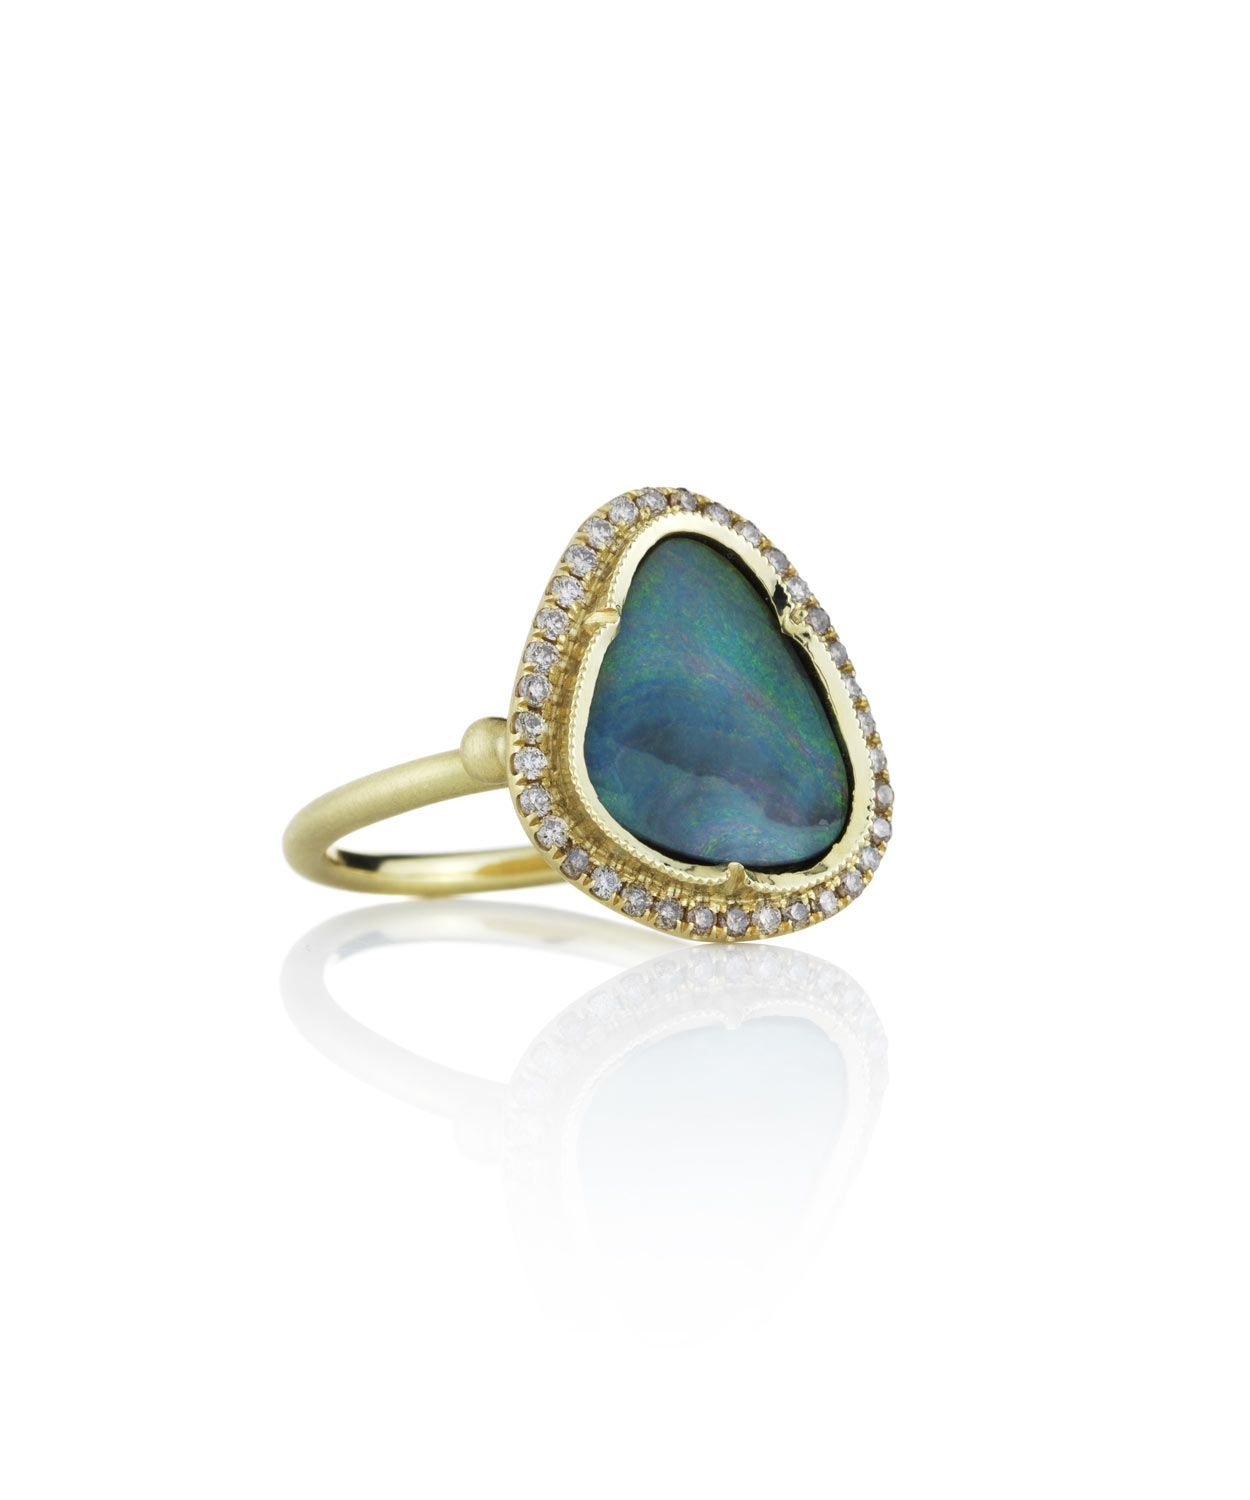 Our Heroine is Mysterious as the Sea - Boulder Opal & Pave Diamond Triangle Ring, Brooke Gregson. Collection online at Liberty.co.uk